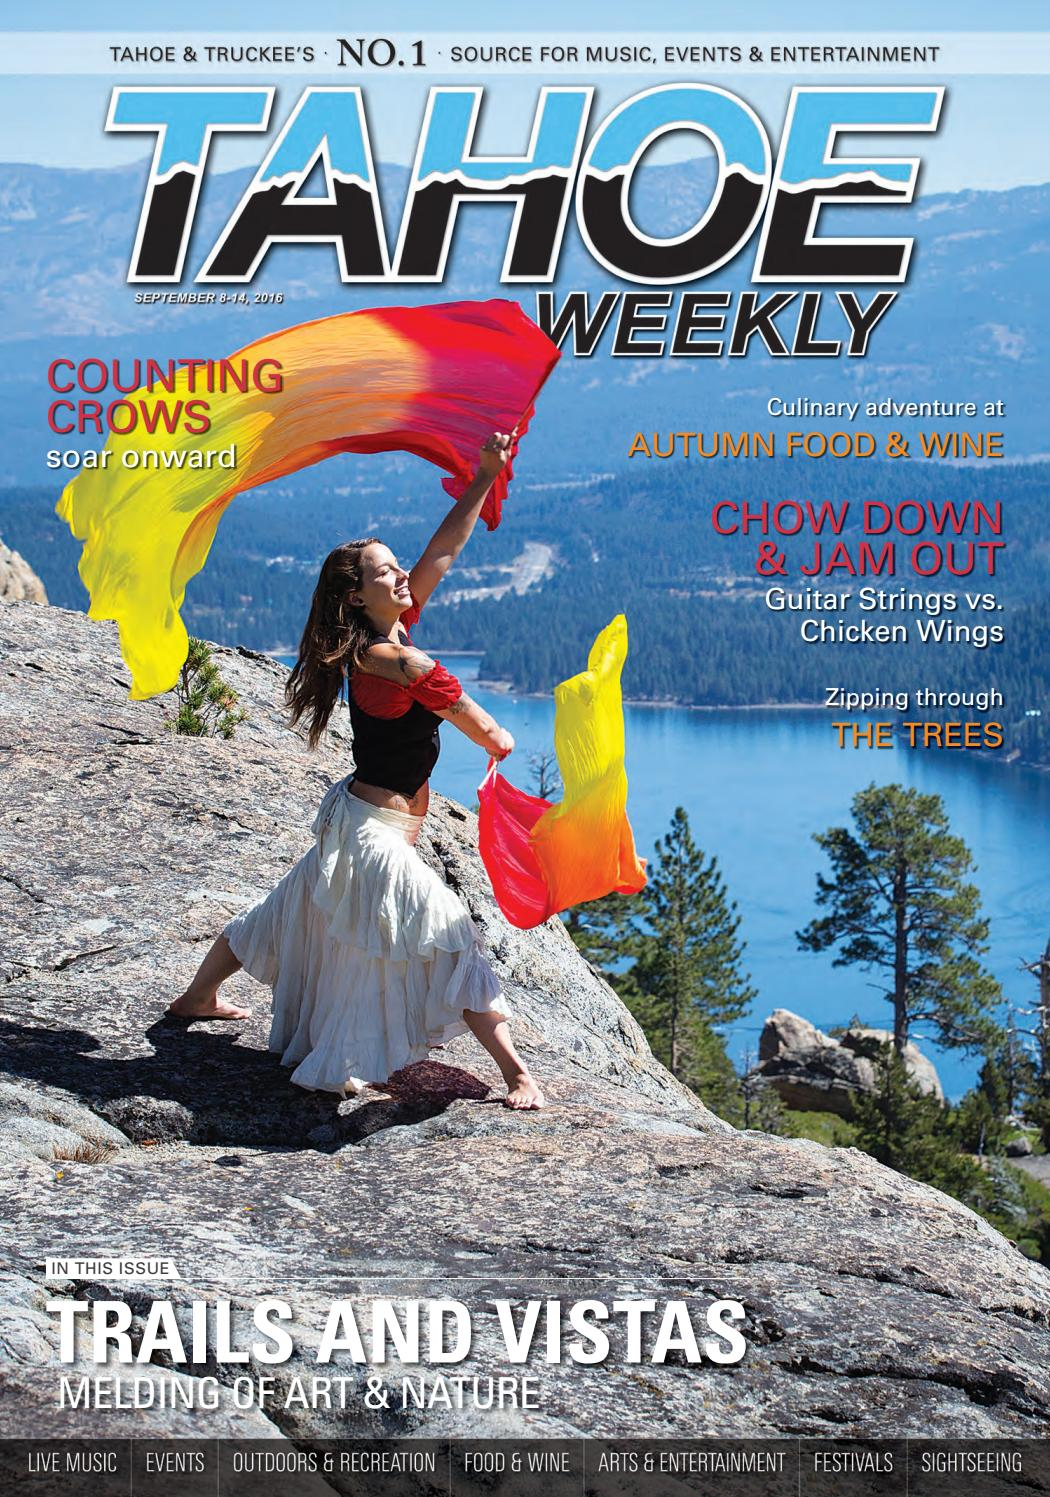 Cucina Restaurant Graeagle Sept 8 14 2016 By Tahoe Weekly Issuu